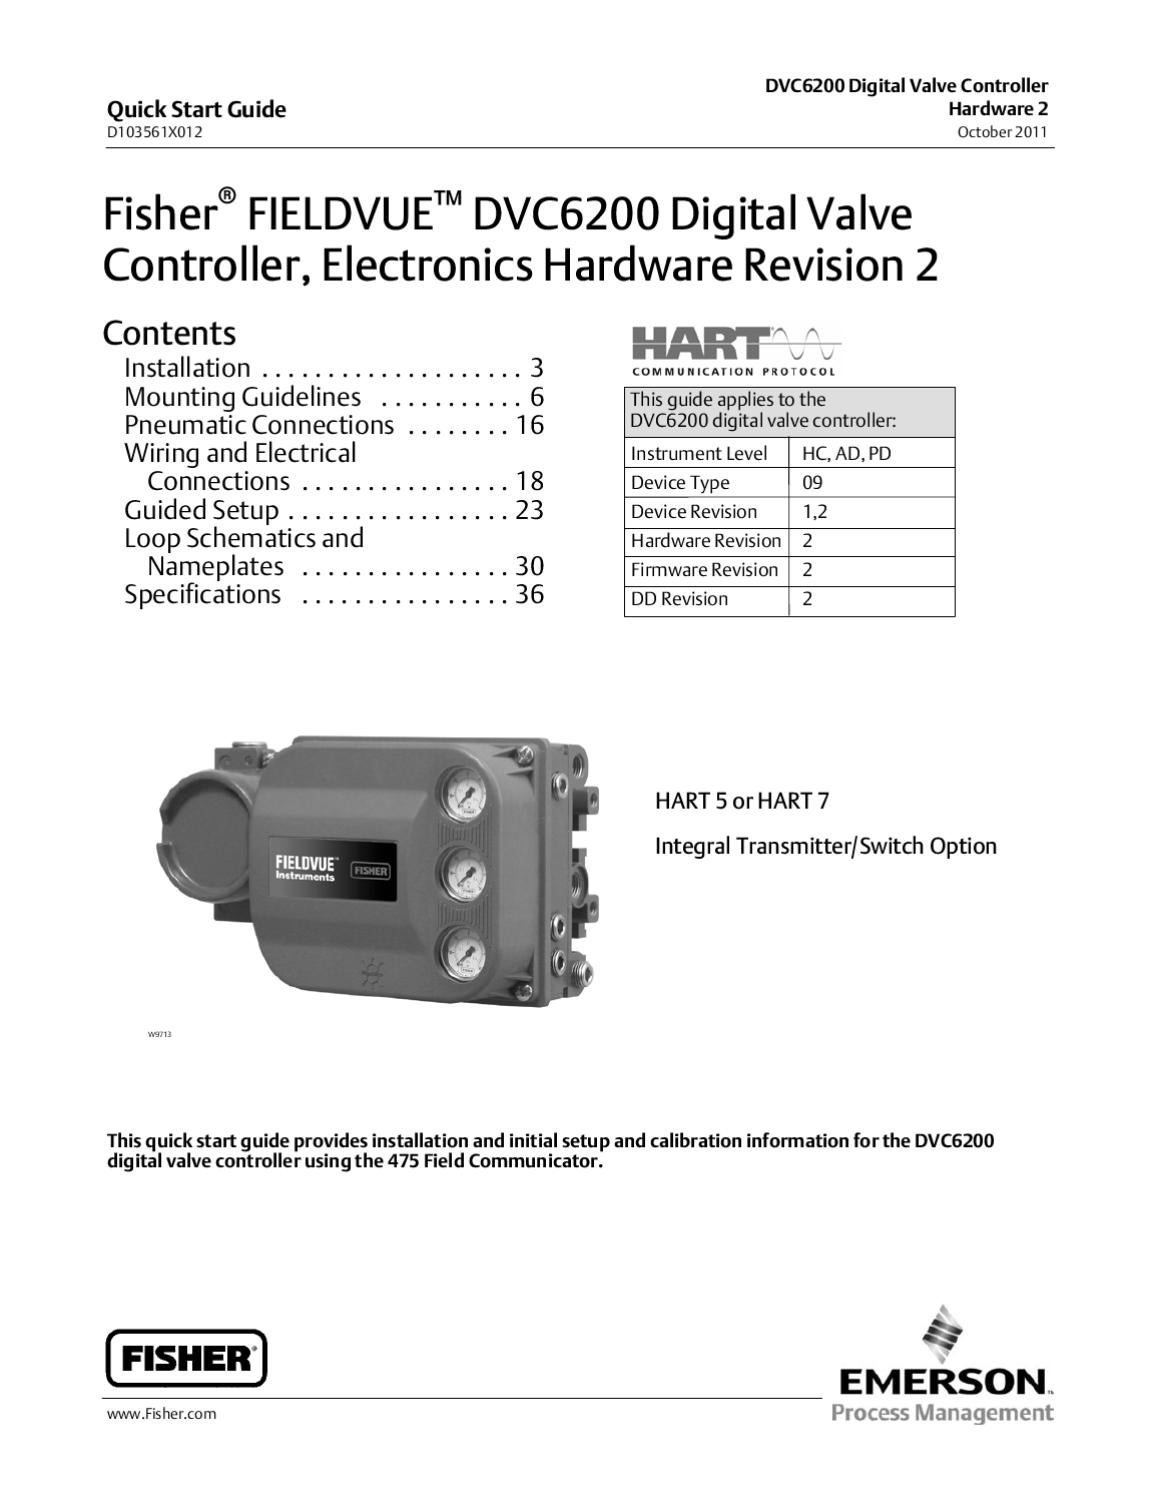 page_1 dvc6200 quick start guide elctrncs hrdwre rev 2 oct 2011 by rmc fisher dvc 2000 wiring diagram at gsmx.co